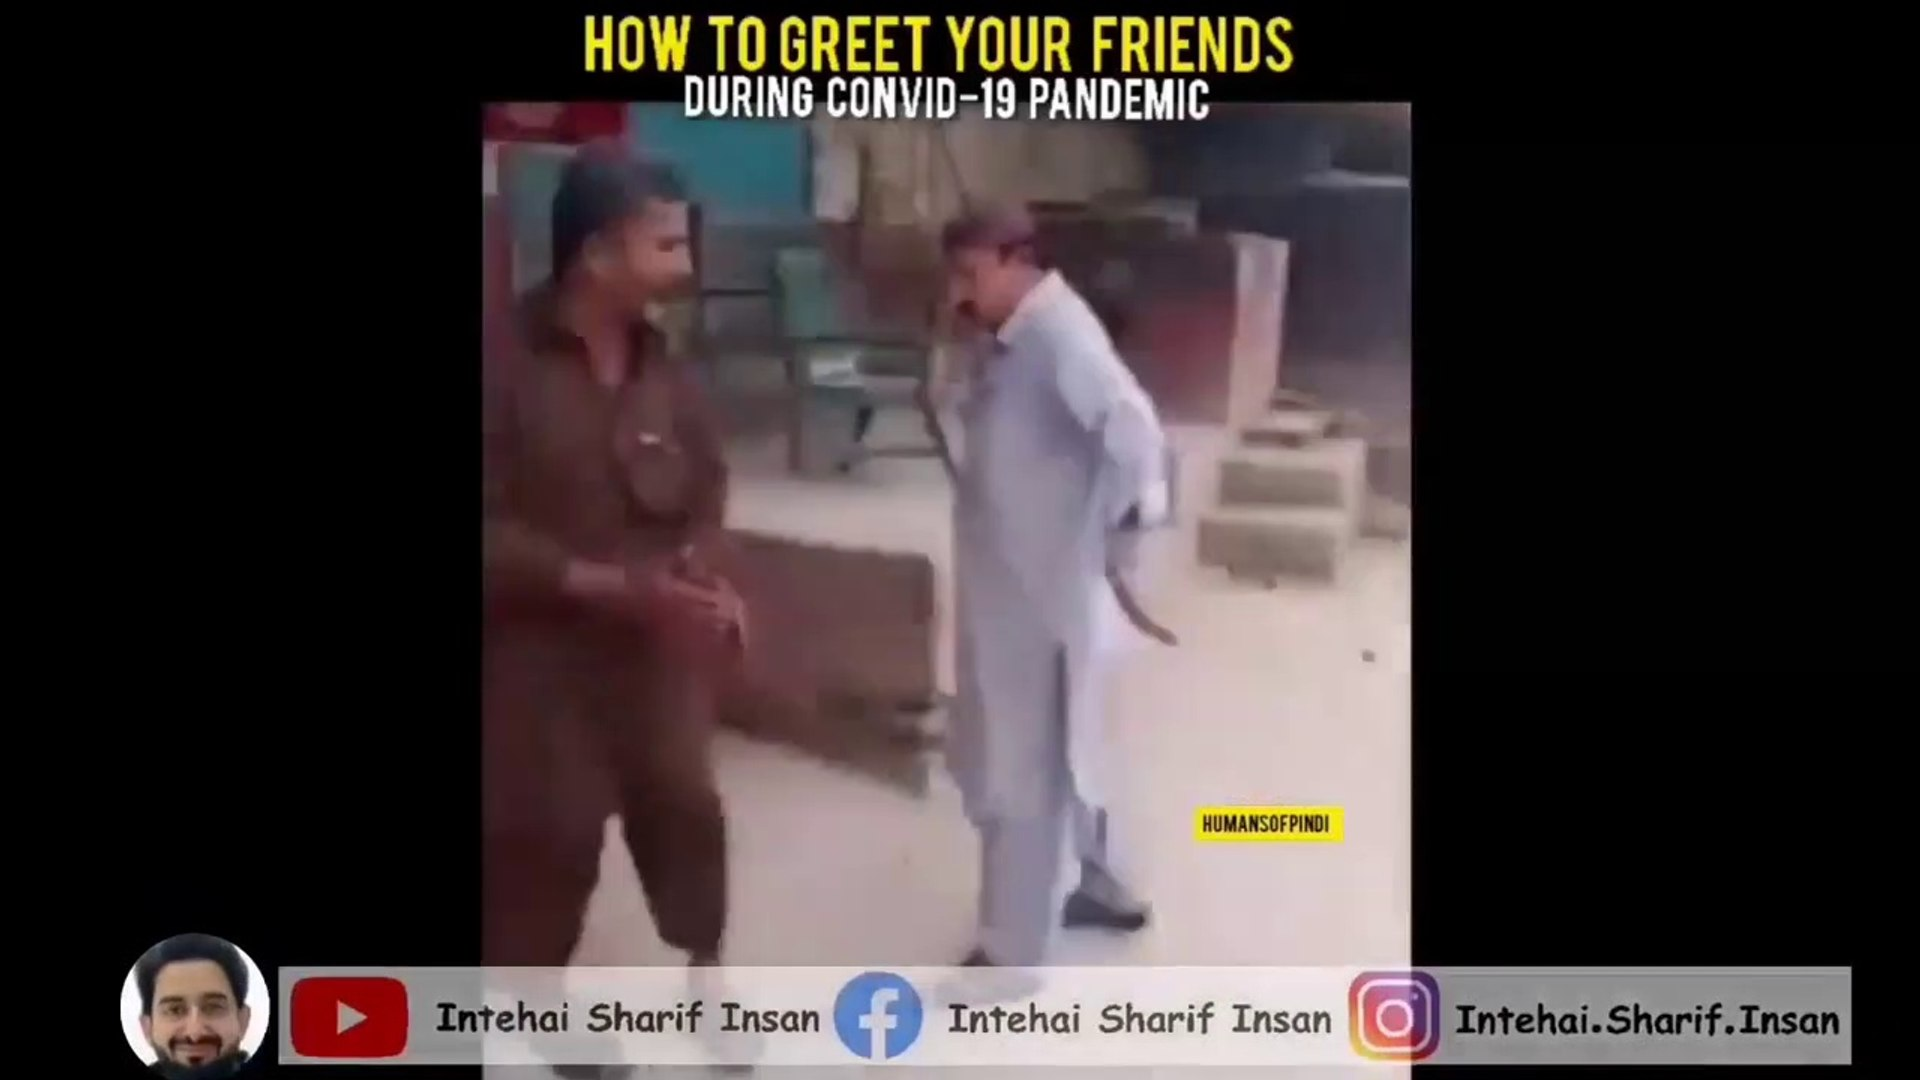 Corona ki Shan Funny & Serious Videos about Covid-19 | Corona Virus | Pindi Boys Behaviour on Co